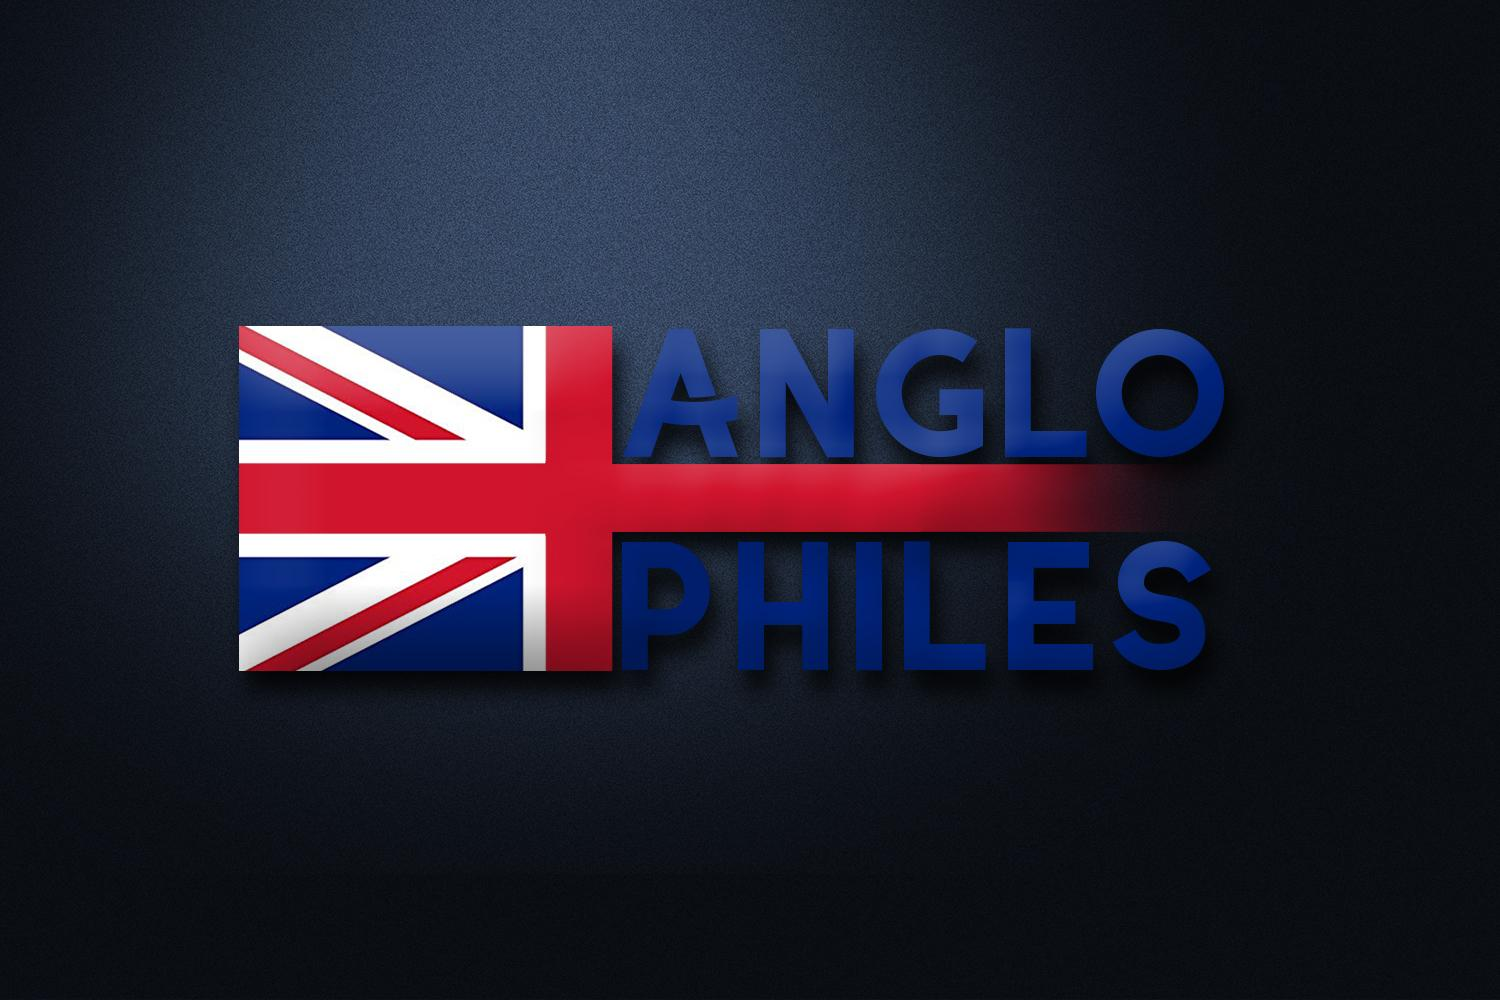 Logotype anglophiles